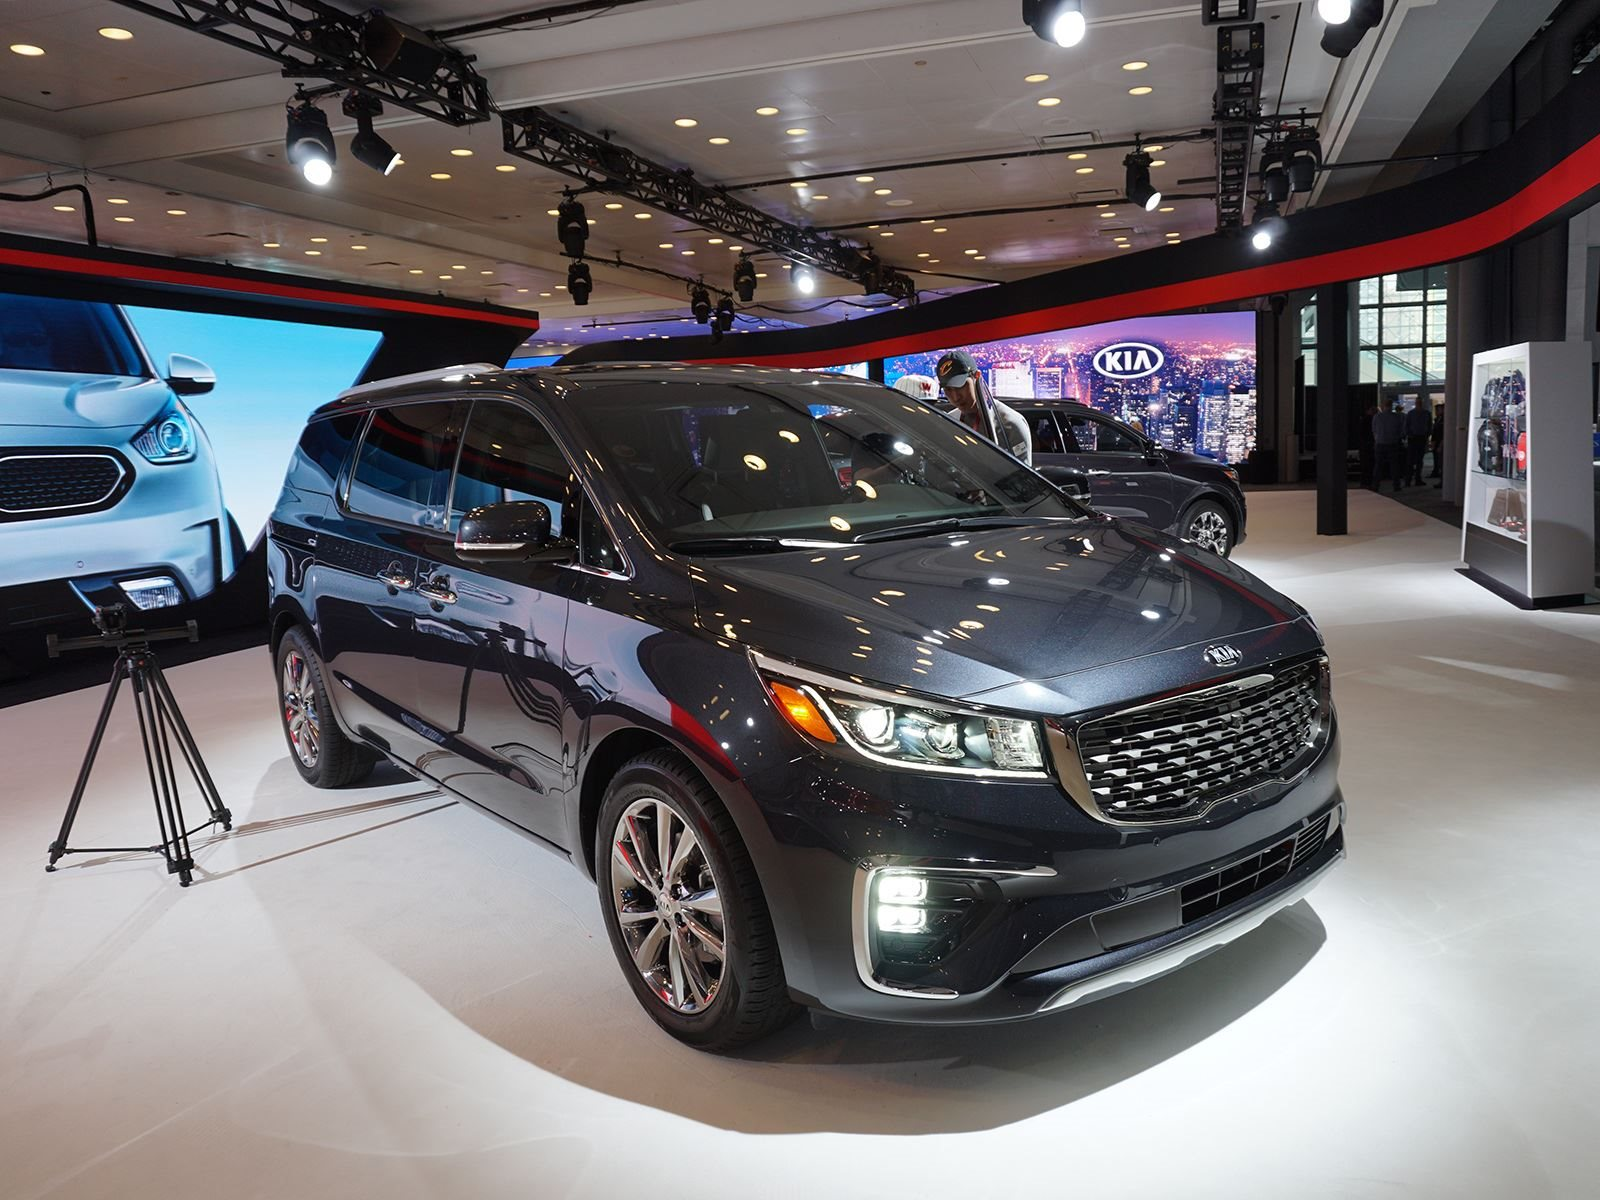 2019 Kia Sedona Debuts With Bold Styling And New Tech Carbuzz